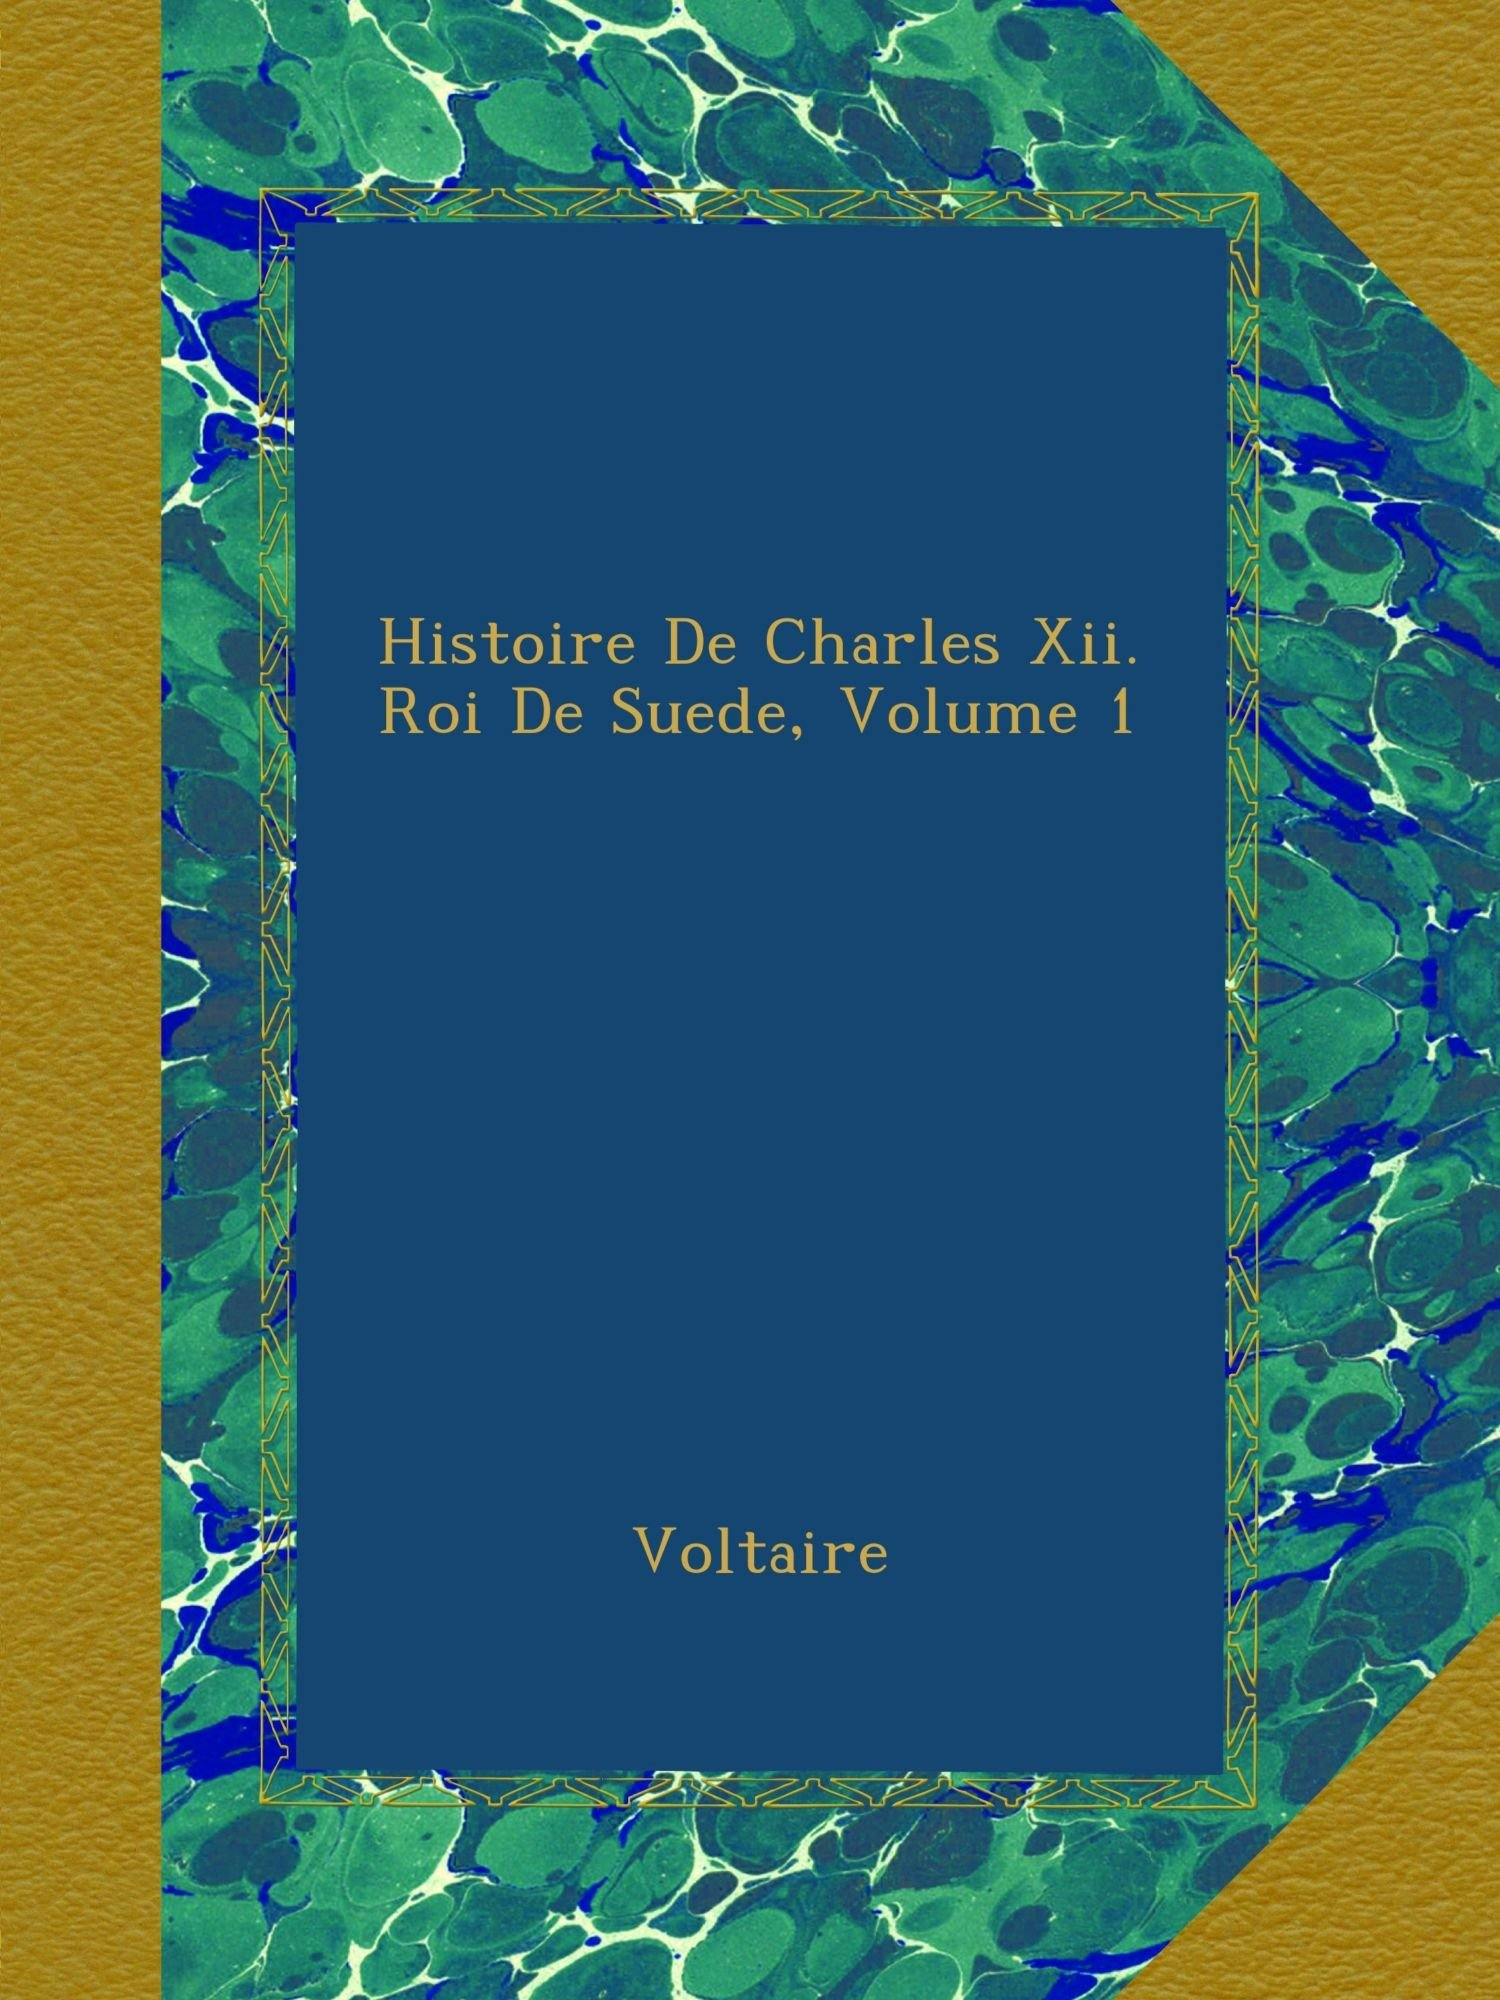 Histoire De Charles Xii. Roi De Suede, Volume 1 (French Edition)